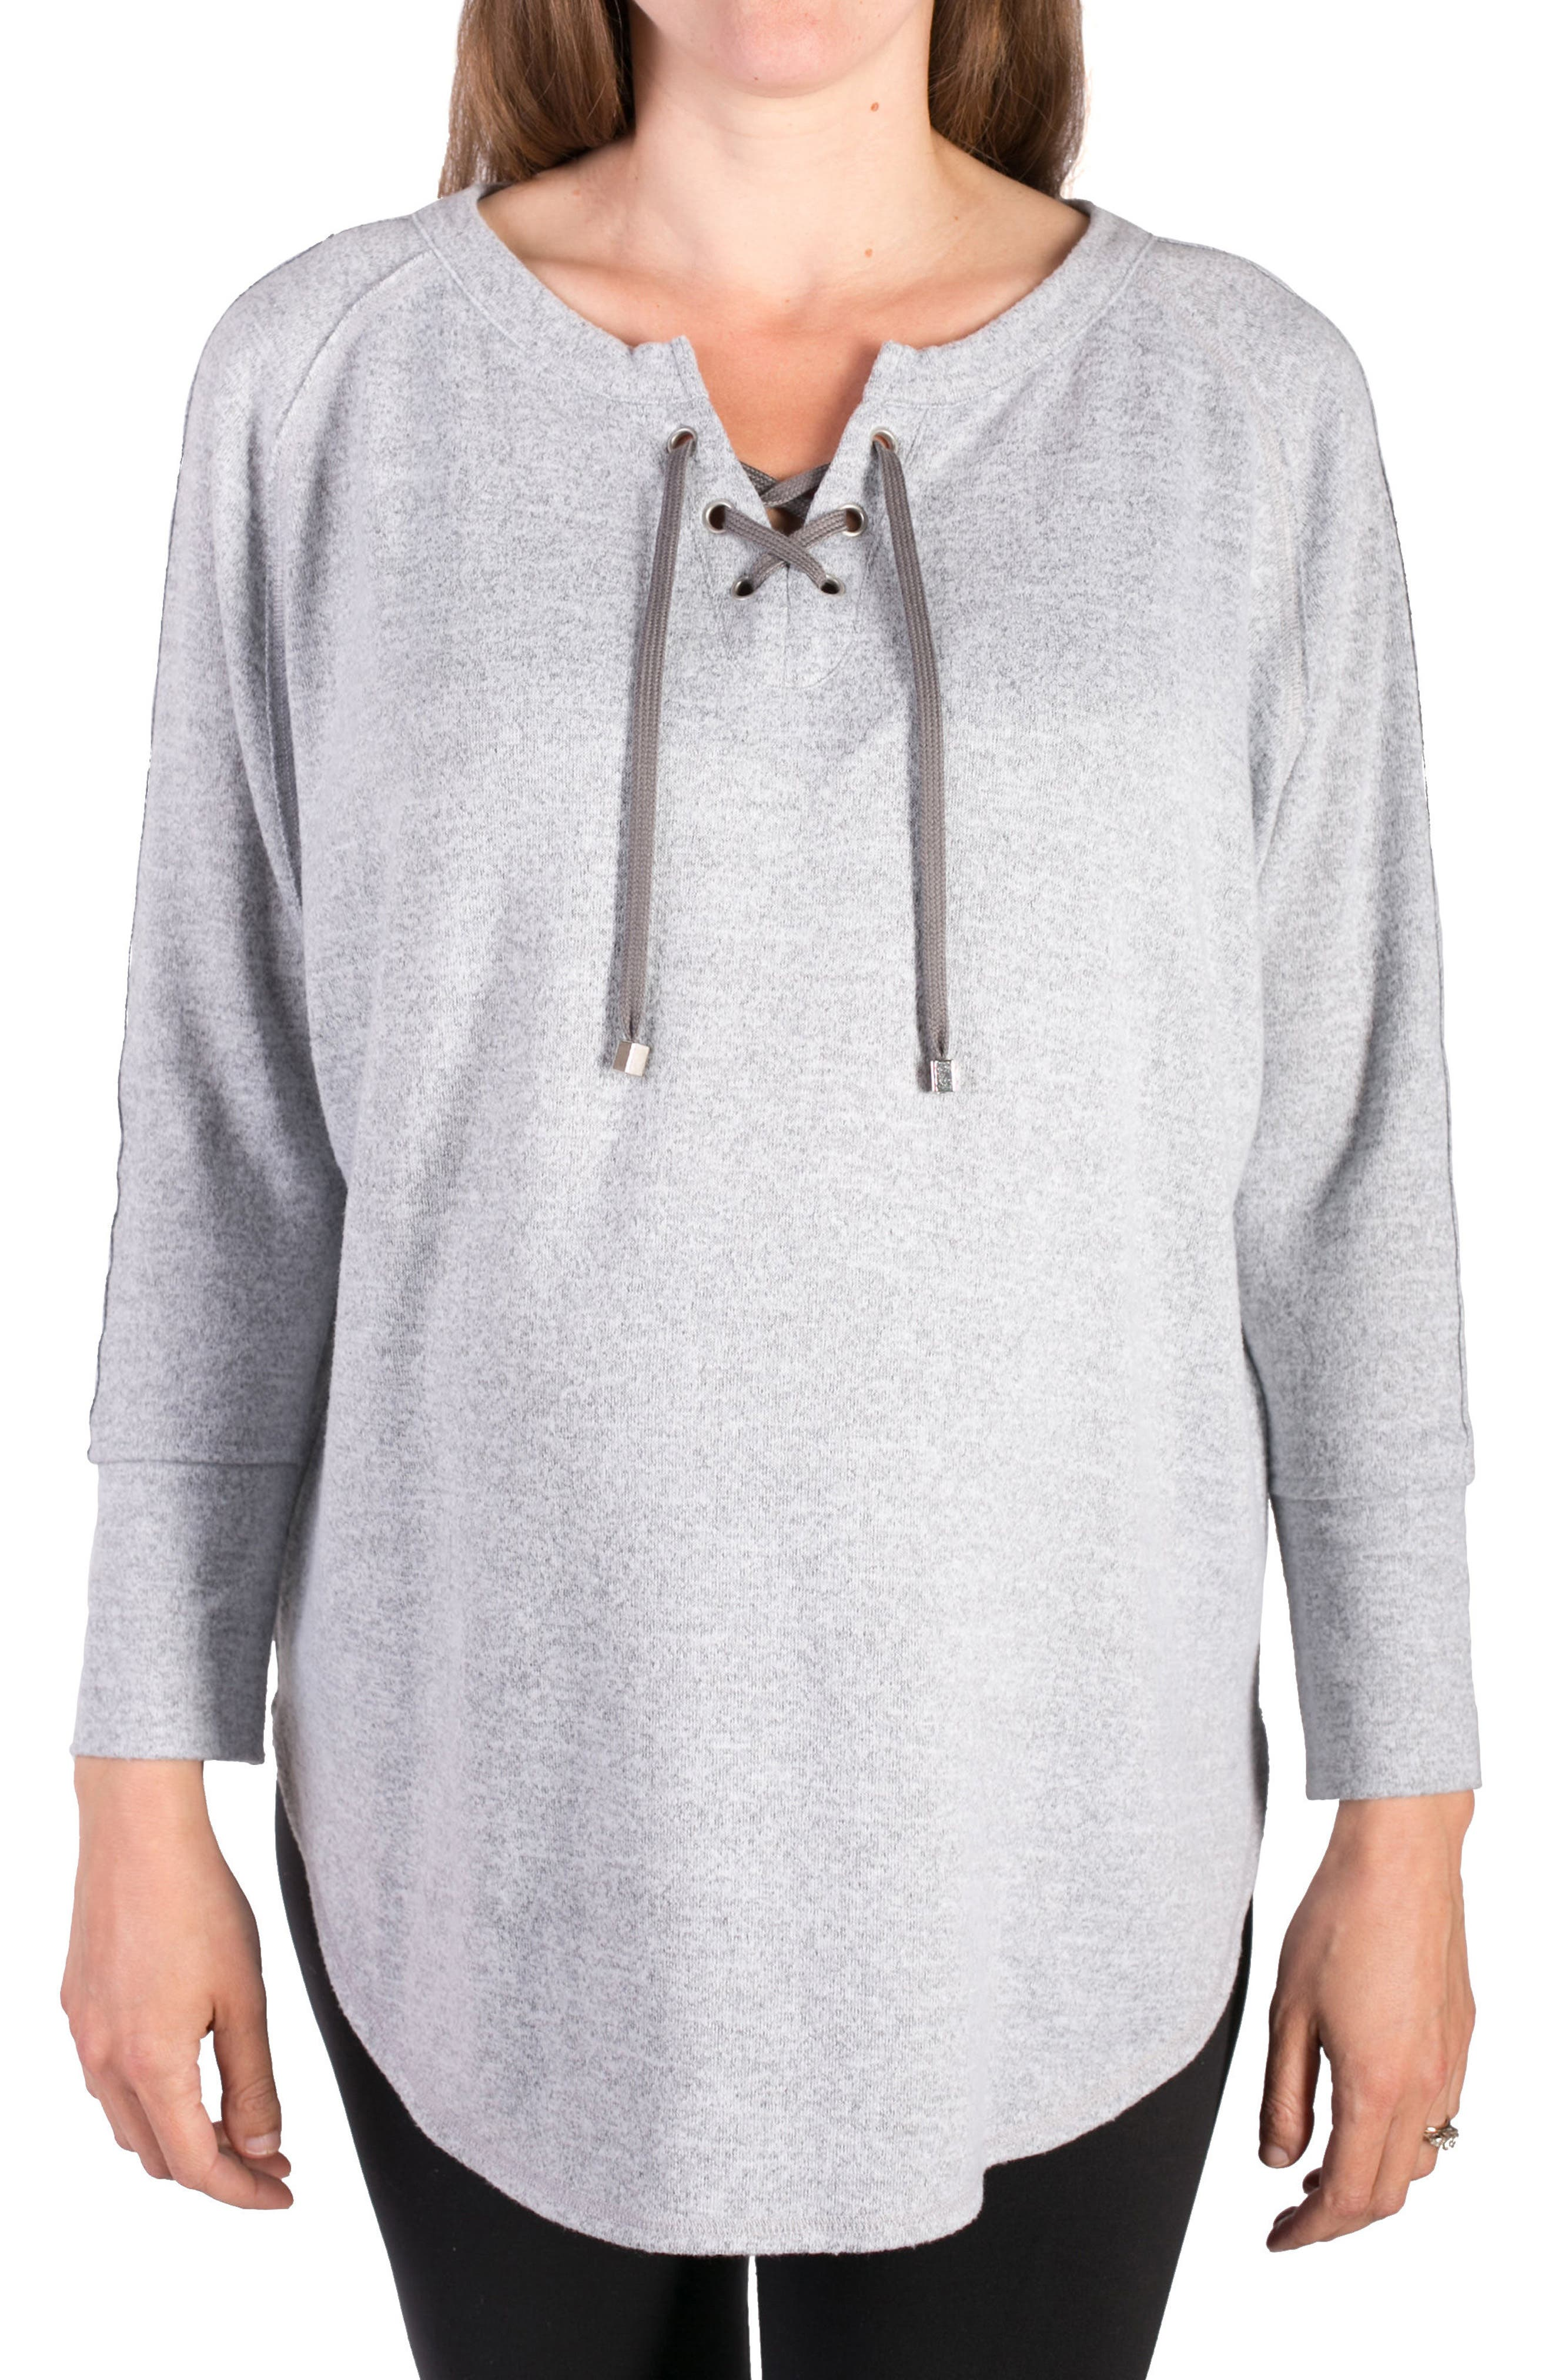 INGRID & ISABEL<SUP>®</SUP>, Cocoon Lace-Up Maternity Top, Main thumbnail 1, color, LIGHT HEATHER GREY